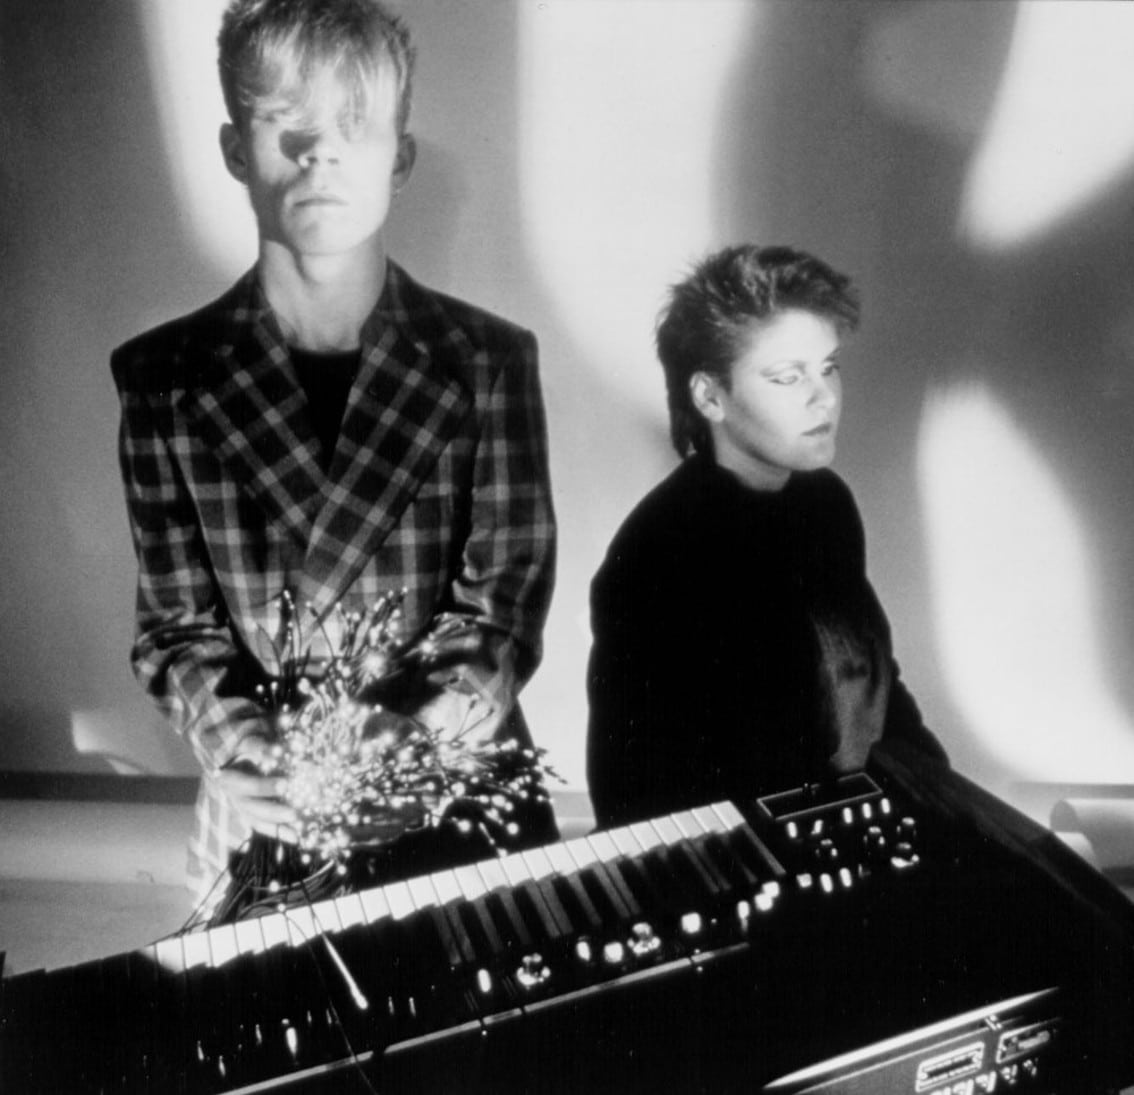 Brand new Yazoo remix for'Winter Kills' to be featured on new vinyl and CD boxset - orders available now